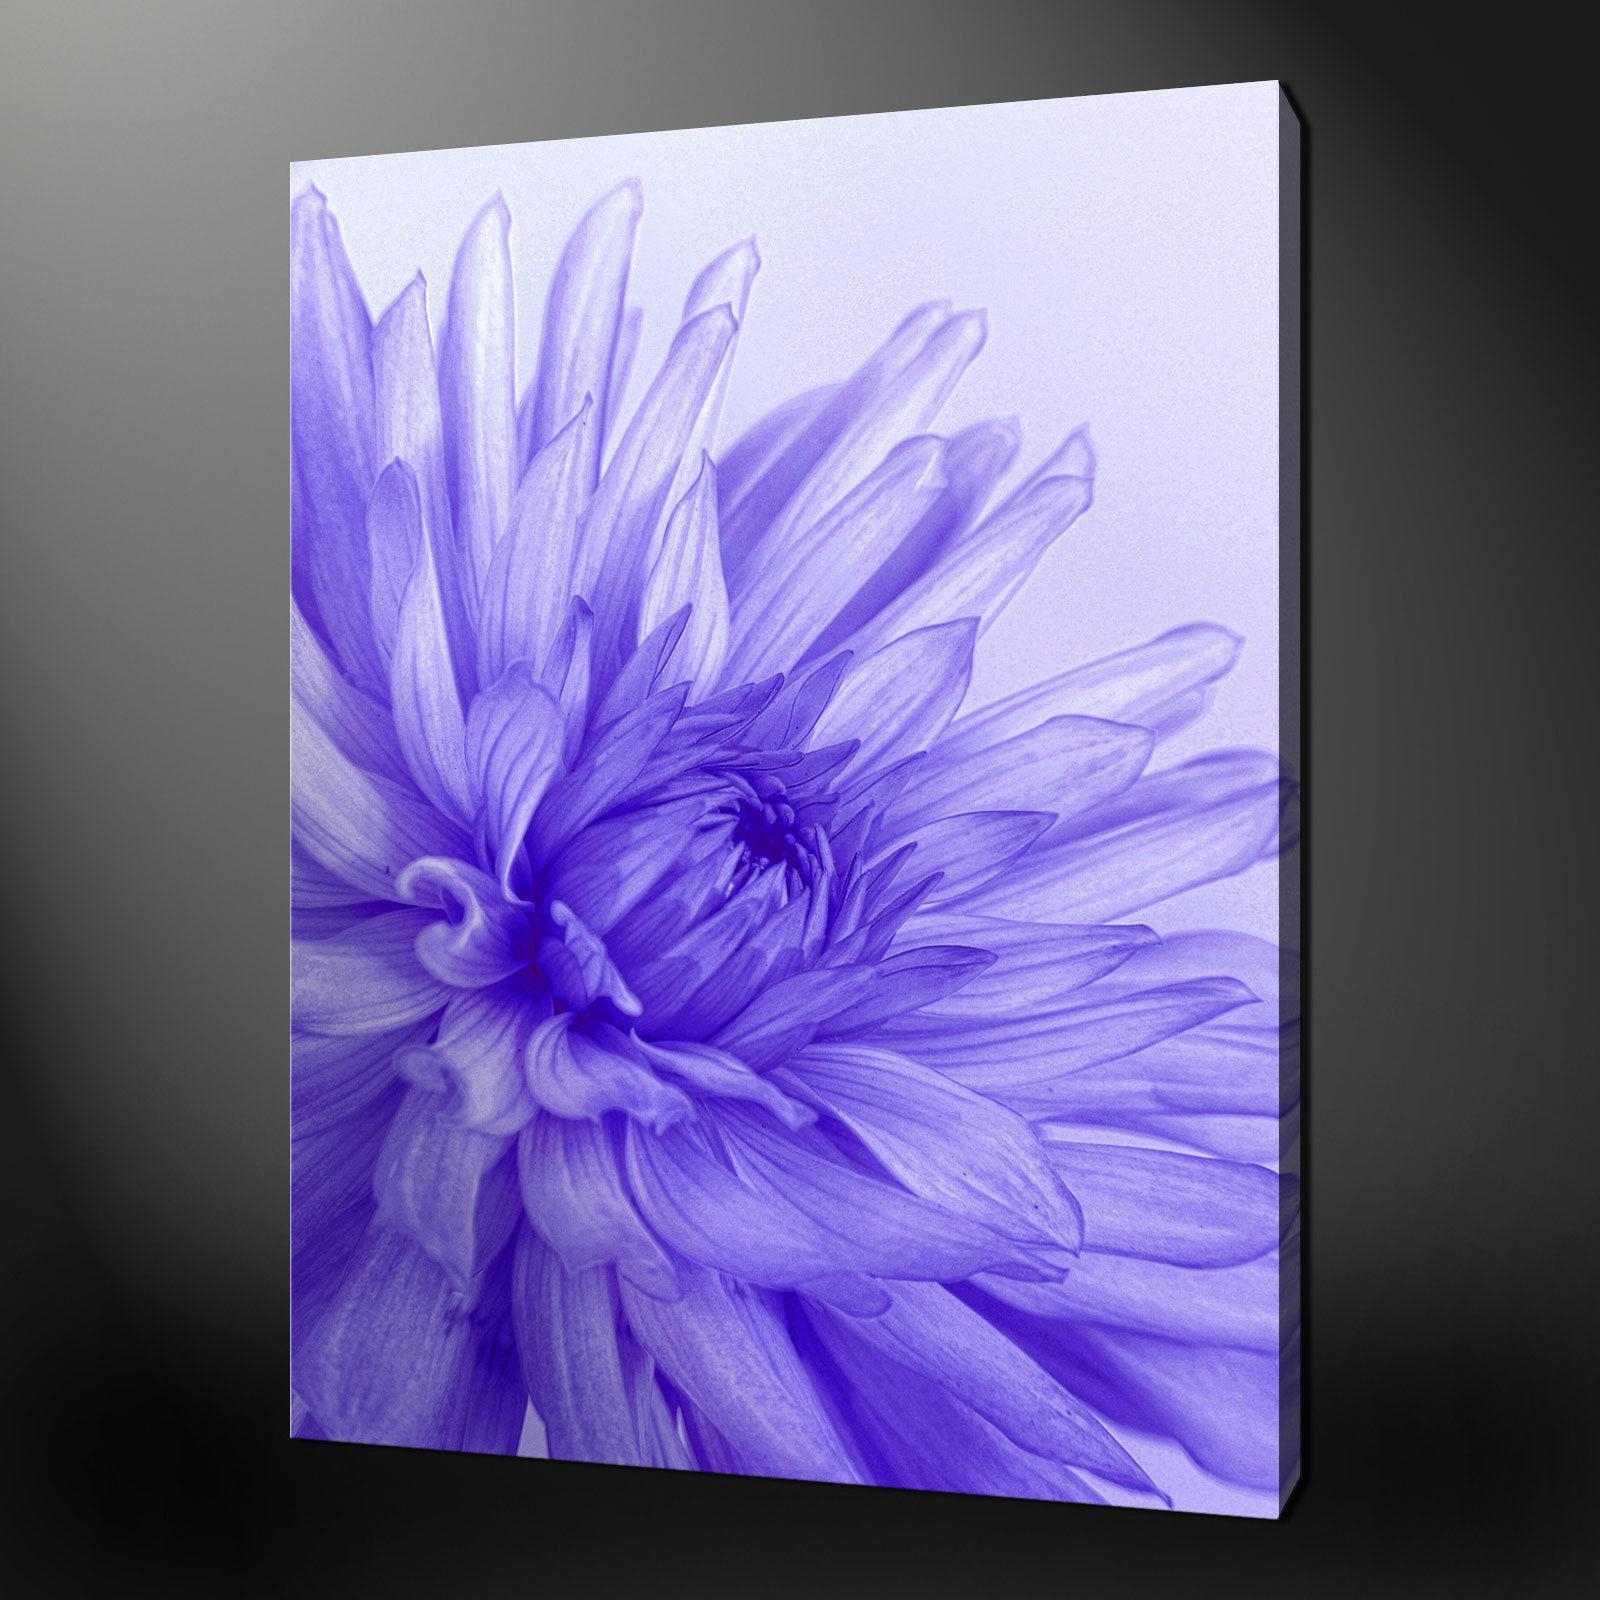 Blue Purple Flower Canvas Wall Art Pictures Prints 20 X 16 Inch With Regard To Purple Canvas Wall Art (View 14 of 20)